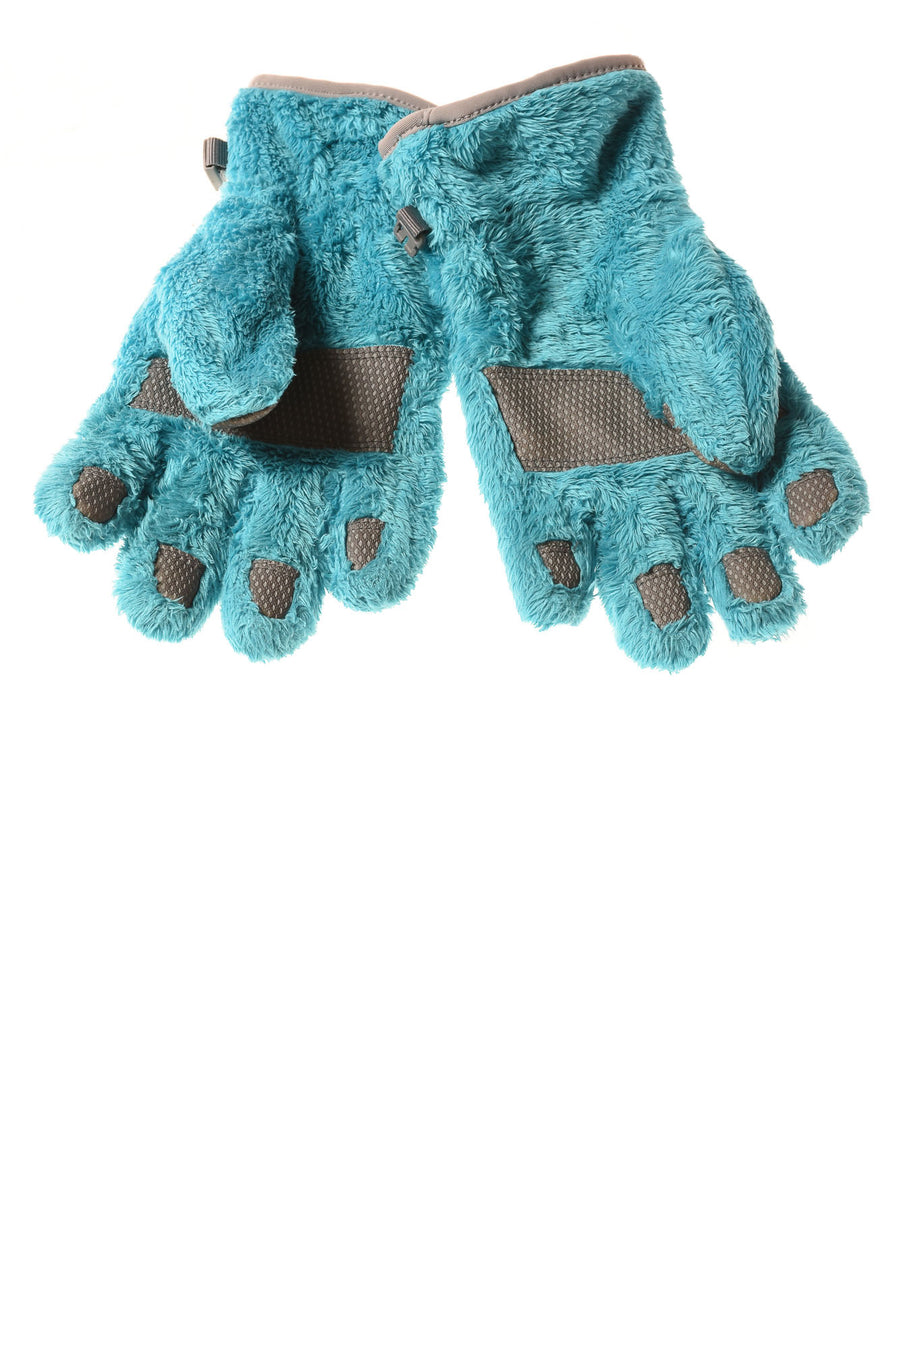 USED The North Face Women's Gloves Medium Blue & Gray